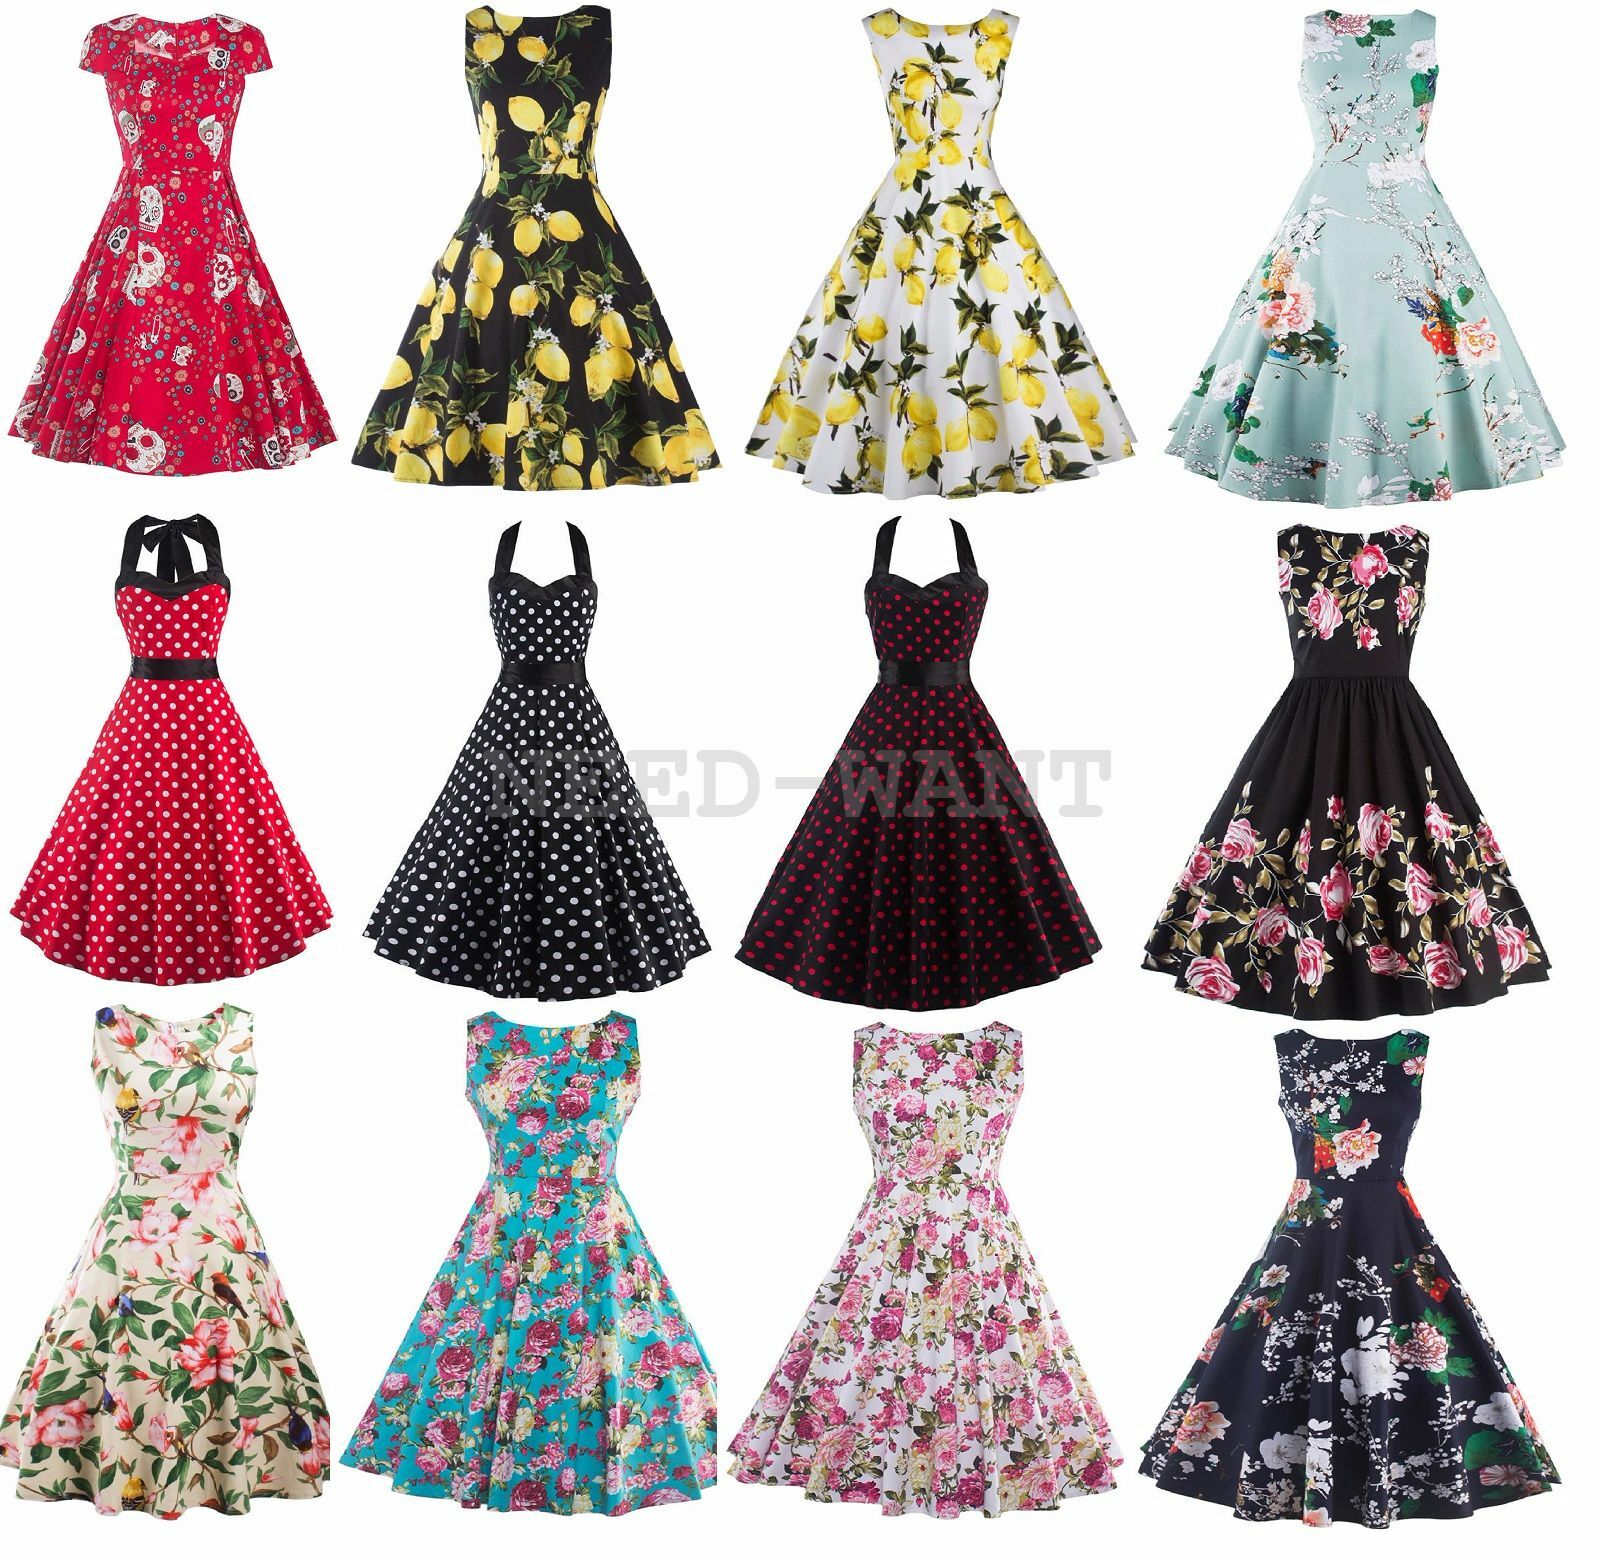 womens 1950s 60s vintage floral style rockabilly cocktail